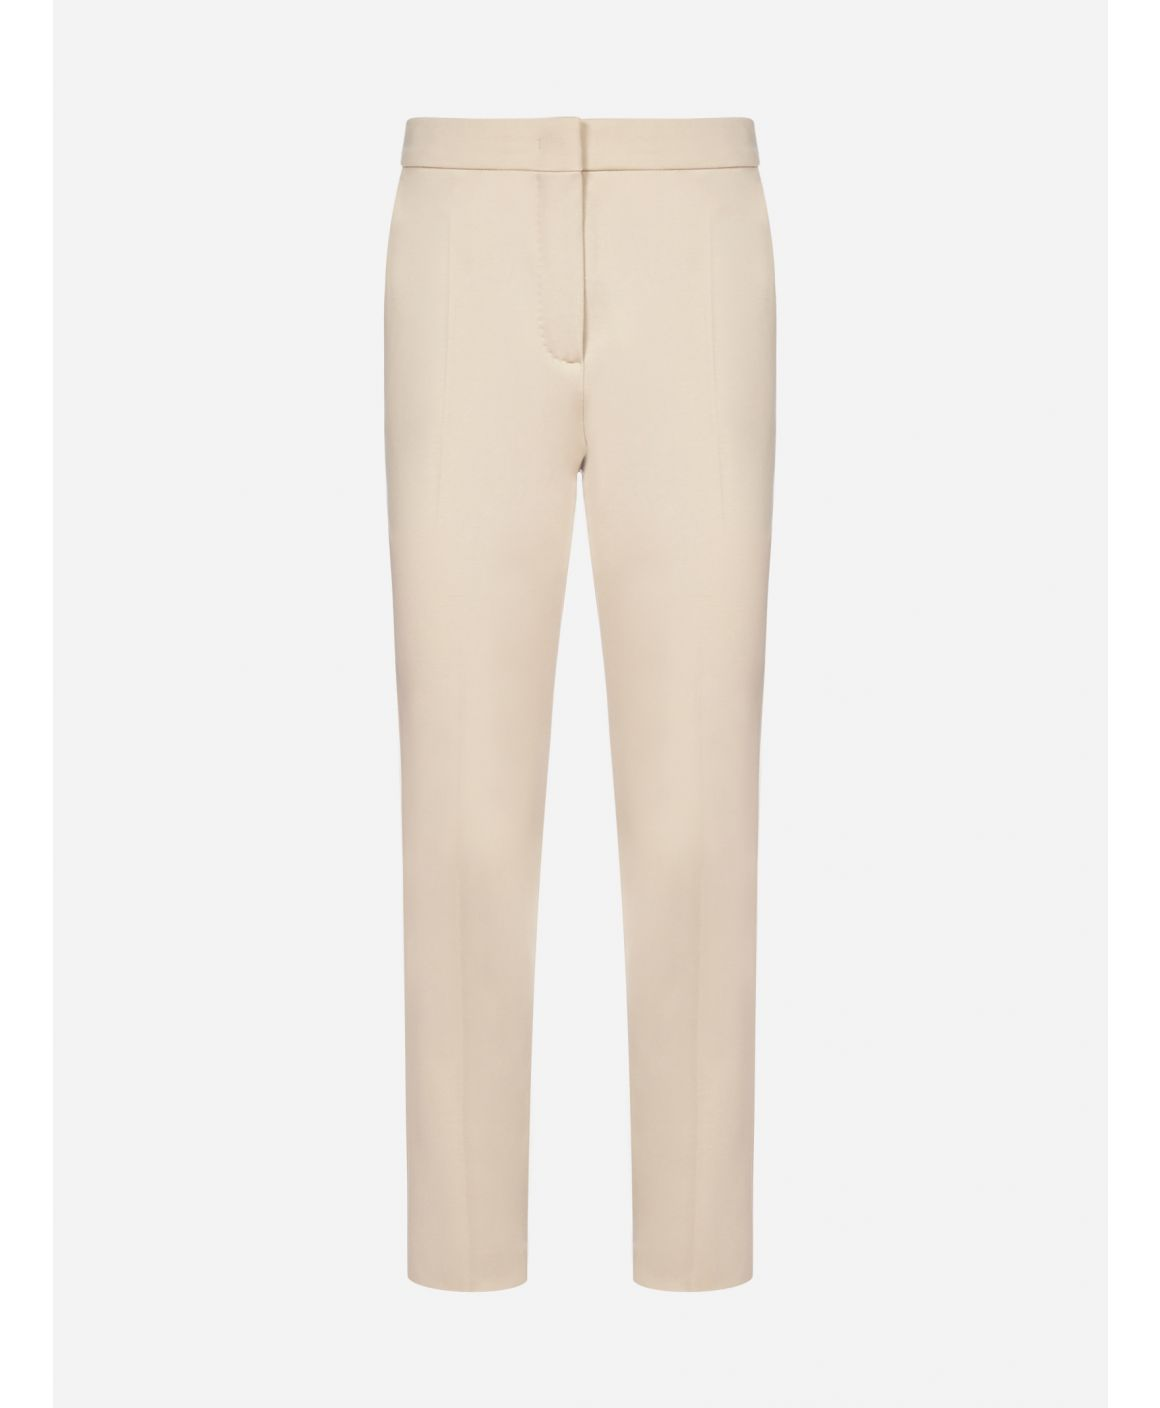 Pegno stretch jersey trousers